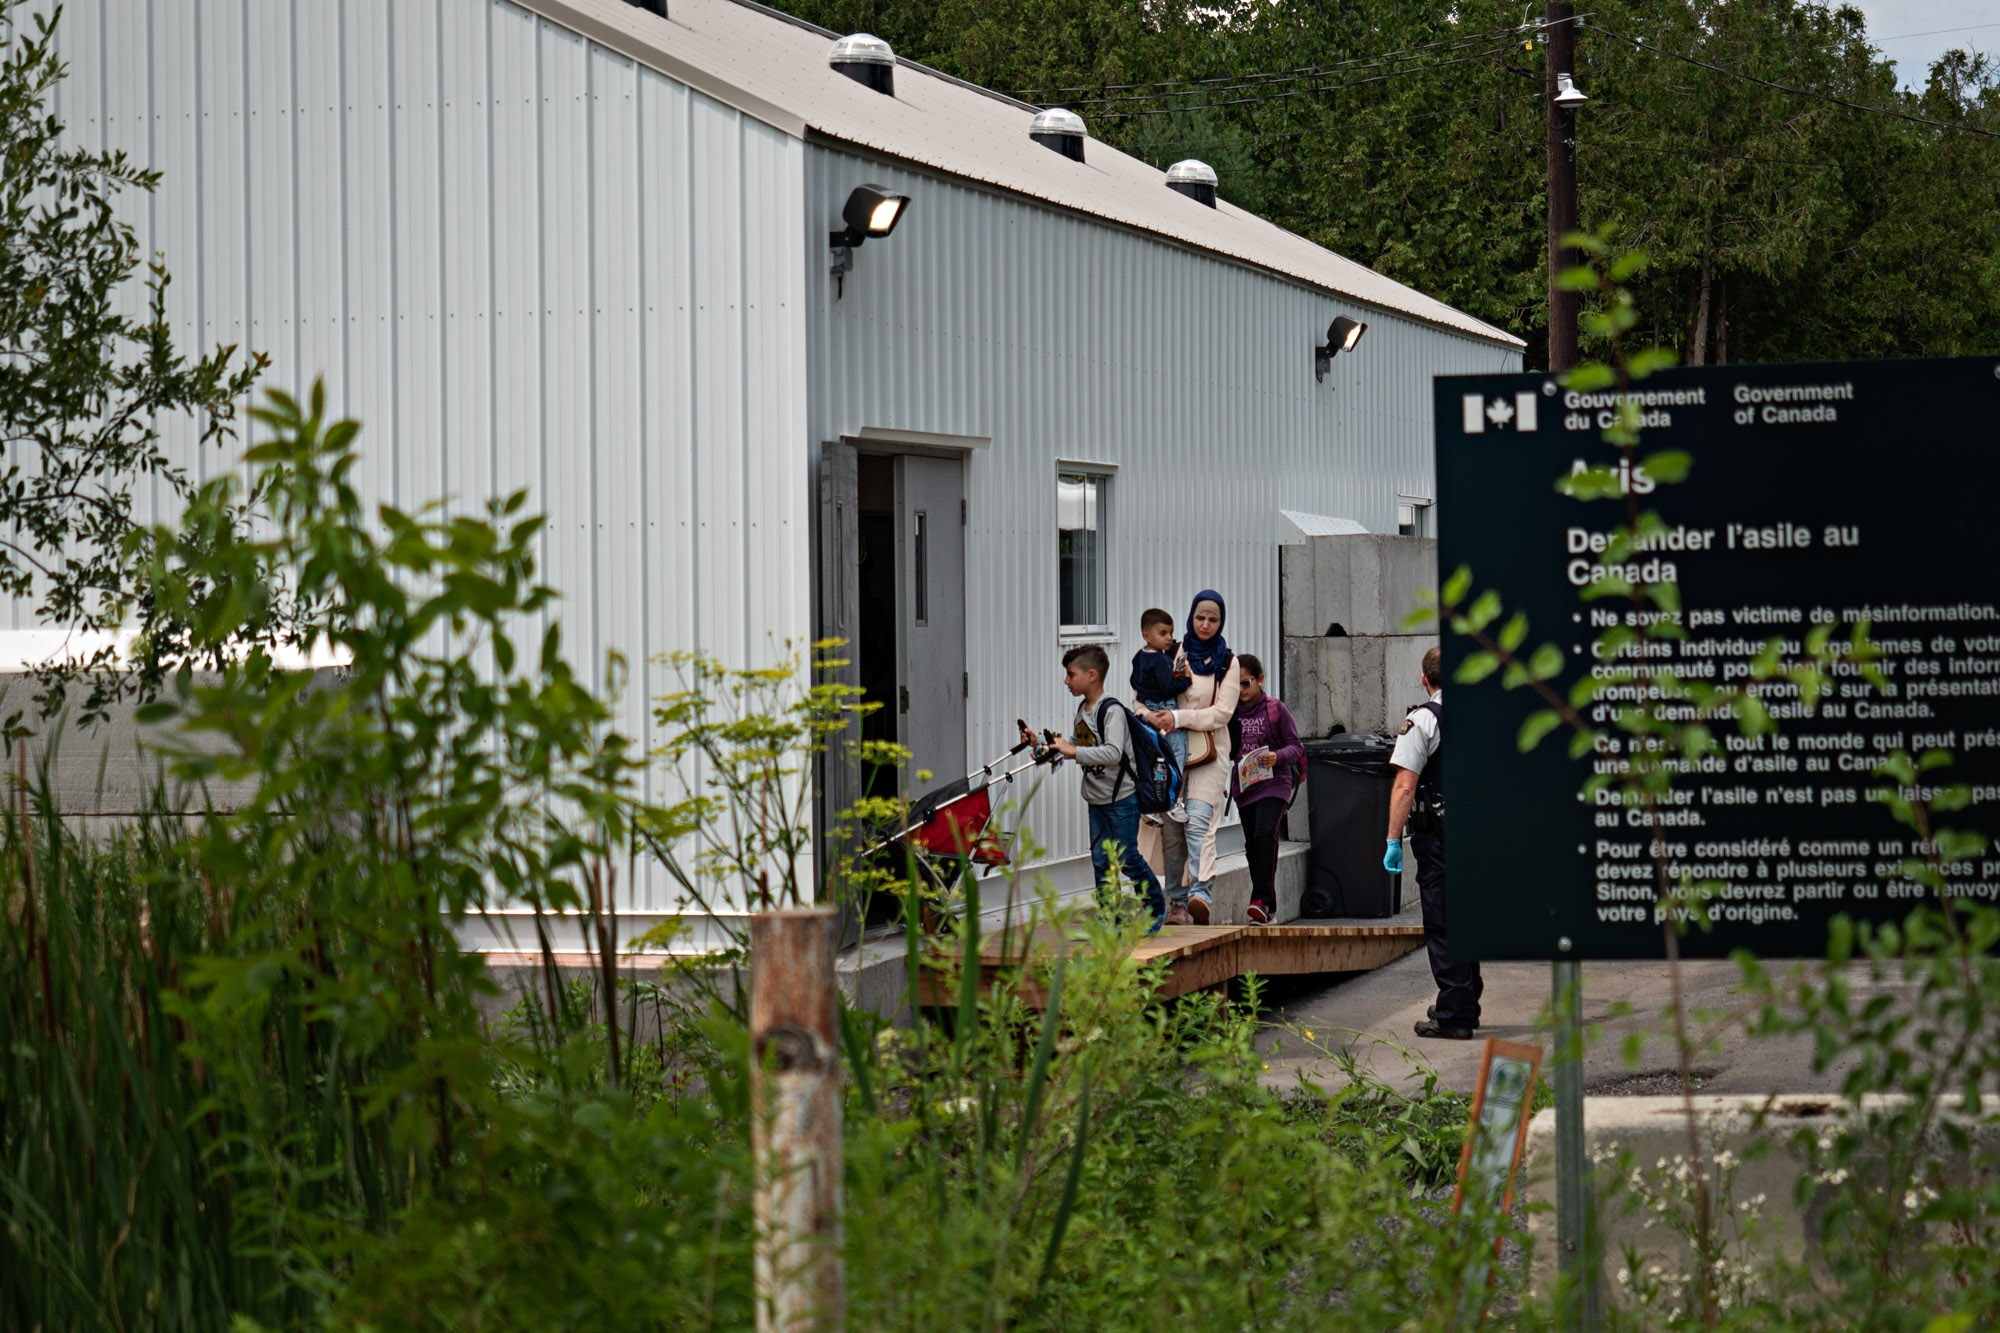 Asylum seekers enter a shelter on the Canadian side of Roxham Road, which starts near Champlain, N.Y. The outpost was built to help process the recent surge of refugees and asylum seekers, which can total about 50 people a day.